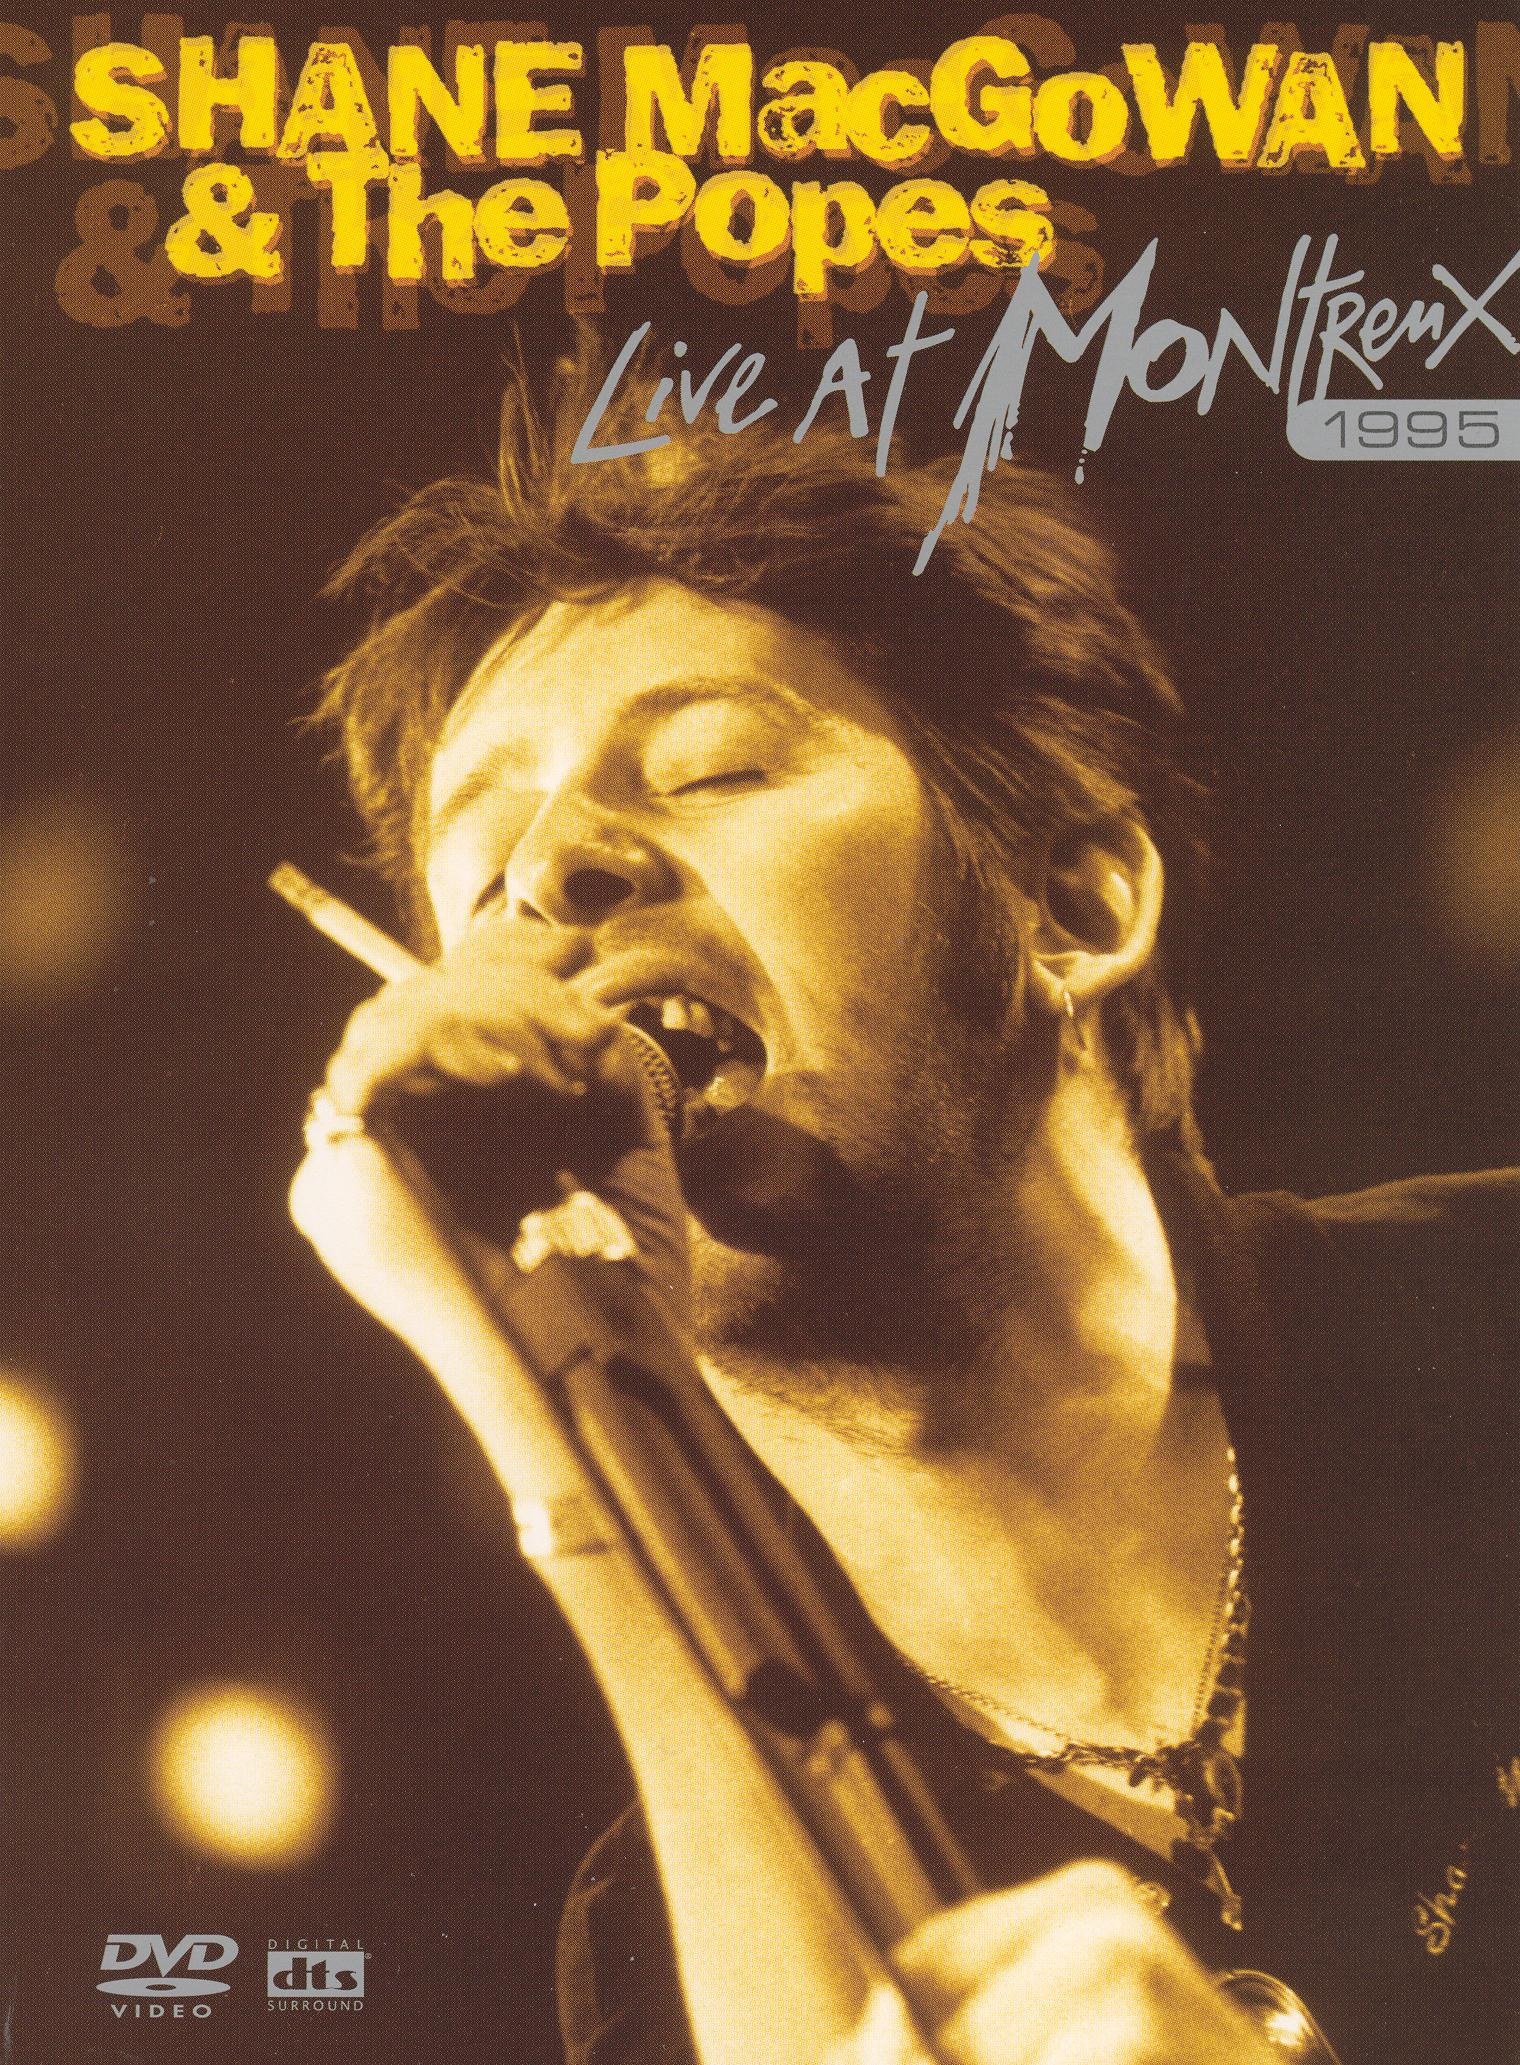 Shane Macgowan and the Popes: Live at Montreux 1995